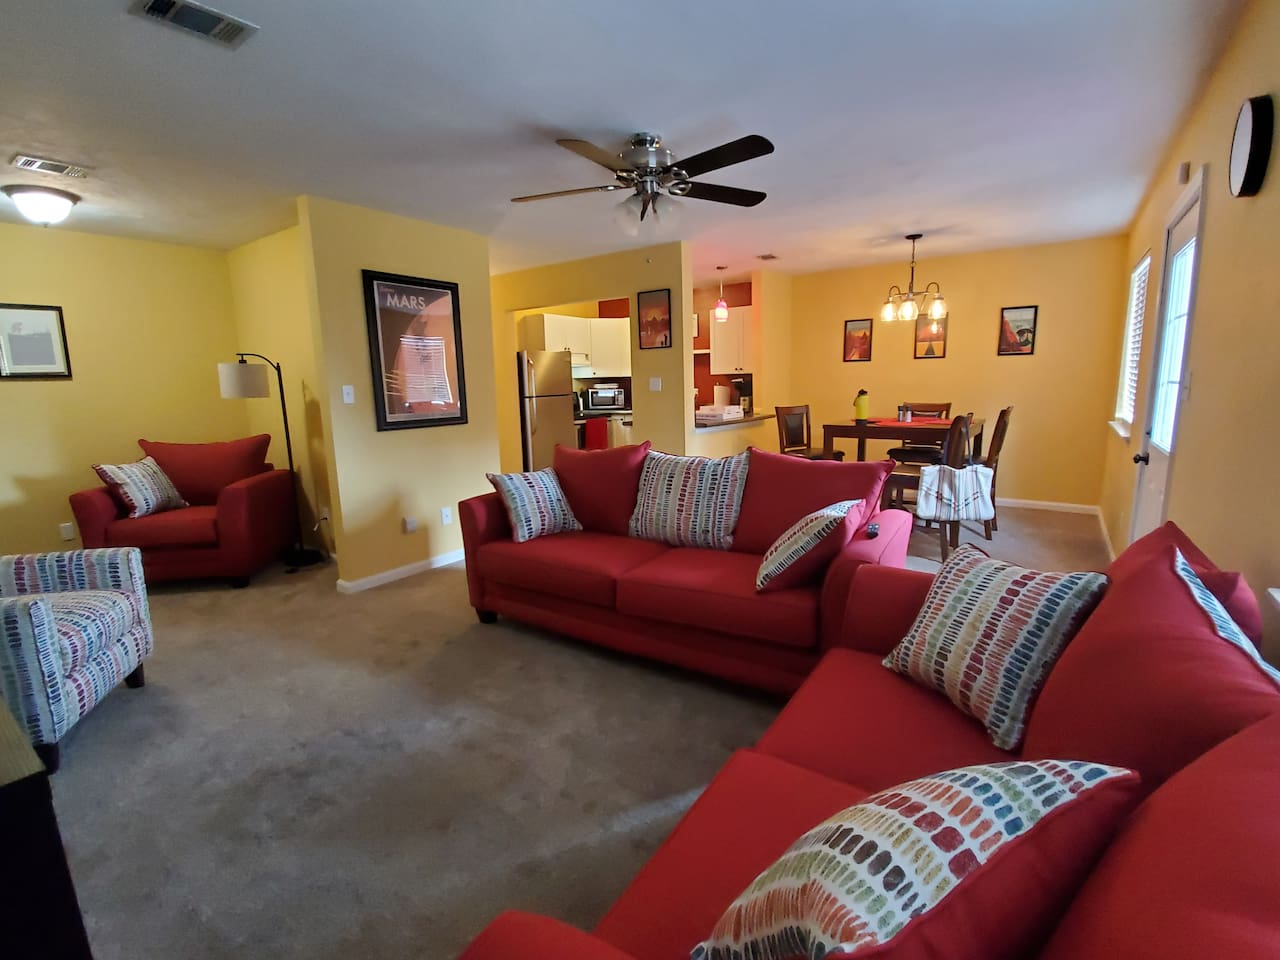 Plenty of seating in an open plan living room.